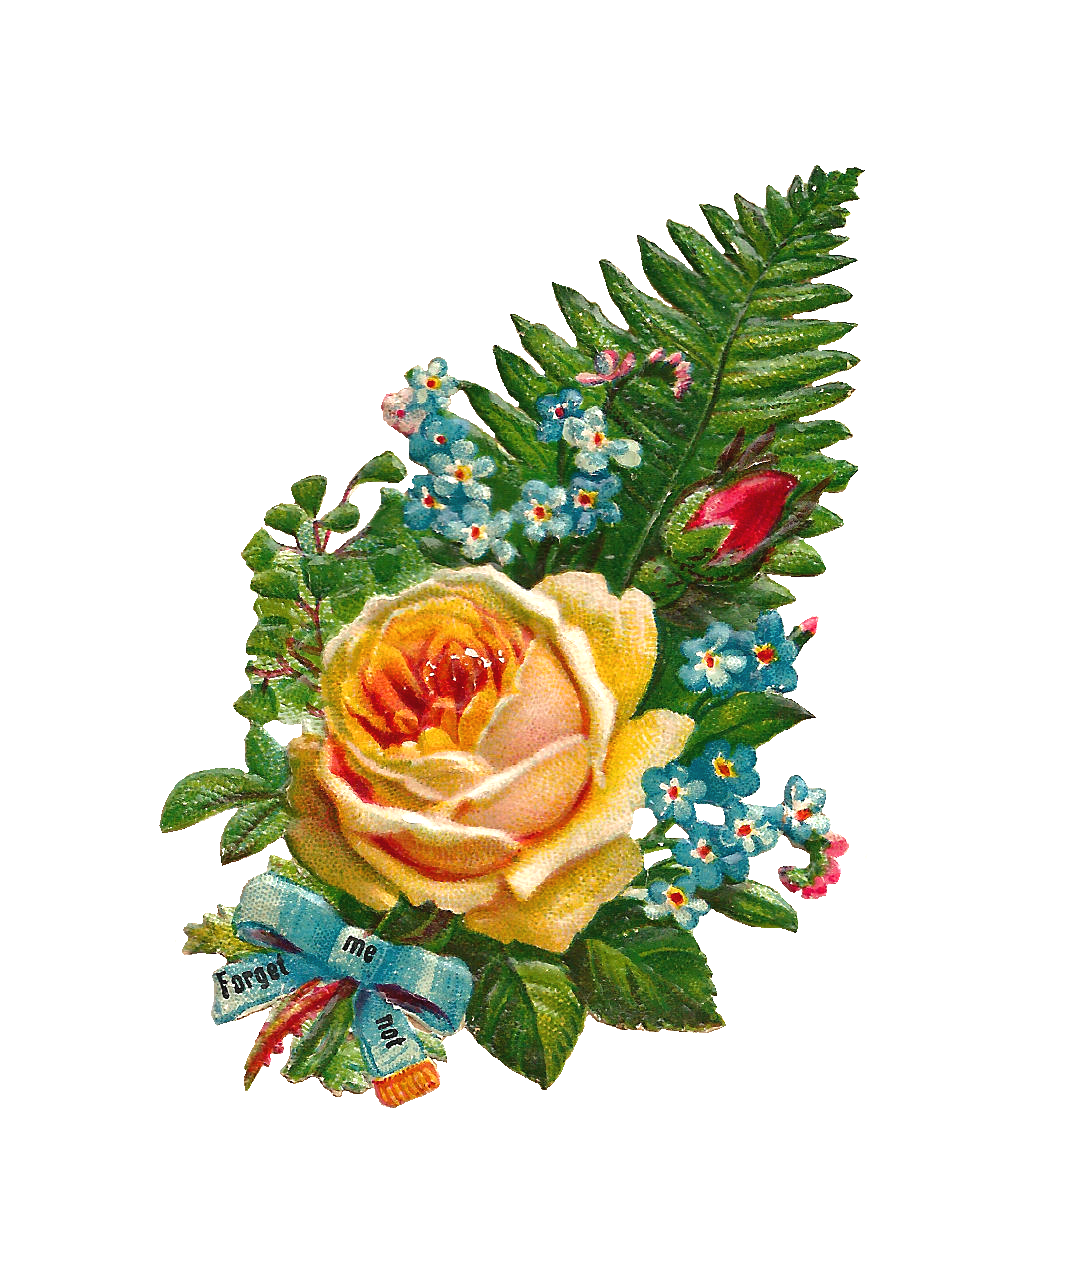 Blue flower bouquet clipart graphic free Antique Images: Free Digital Flower Clip Art: Yellow Rose and Forget ... graphic free